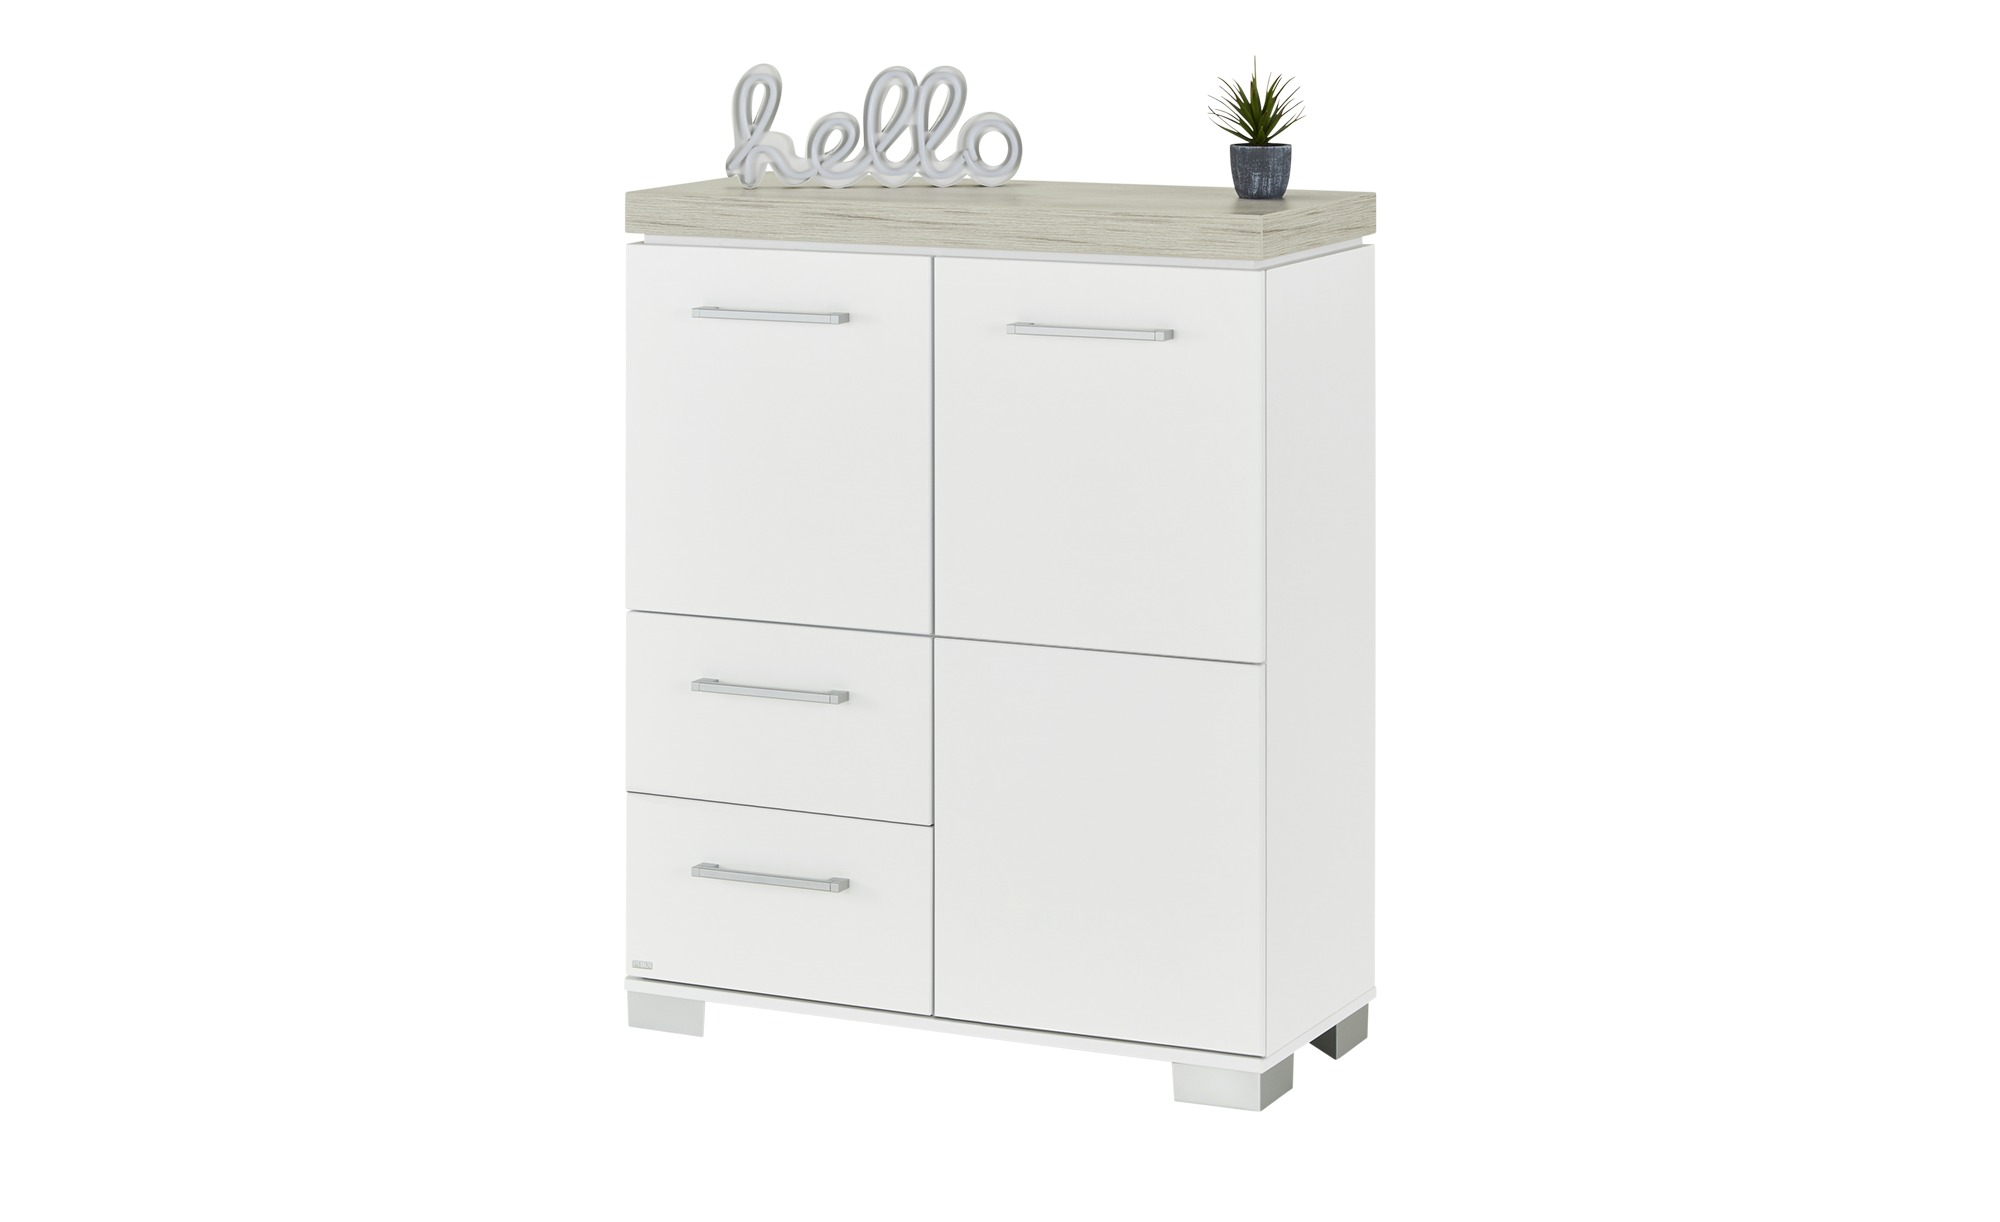 PAIDI Highboard   Kira ¦ weiß ¦ Maße (cm): B: 90,9 H: 111,8 T: 39,6 Kommoden & Sideboards > Highboards - Höffner